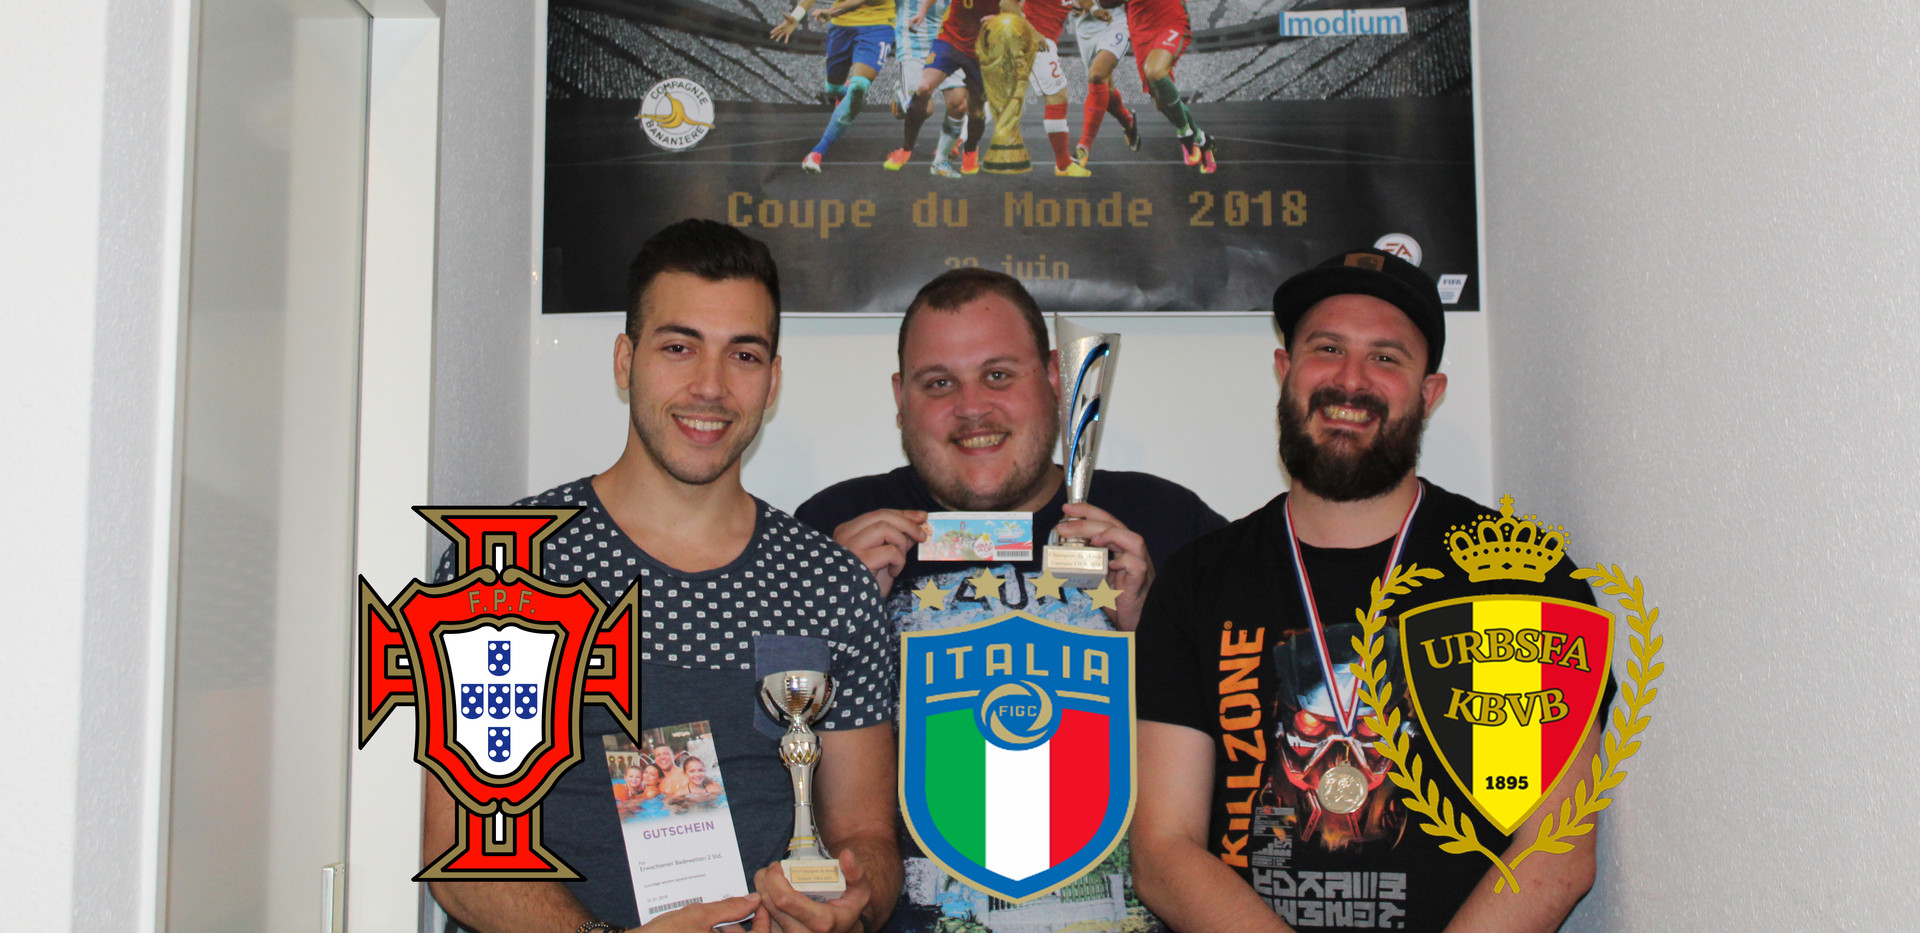 Podium du tournoi